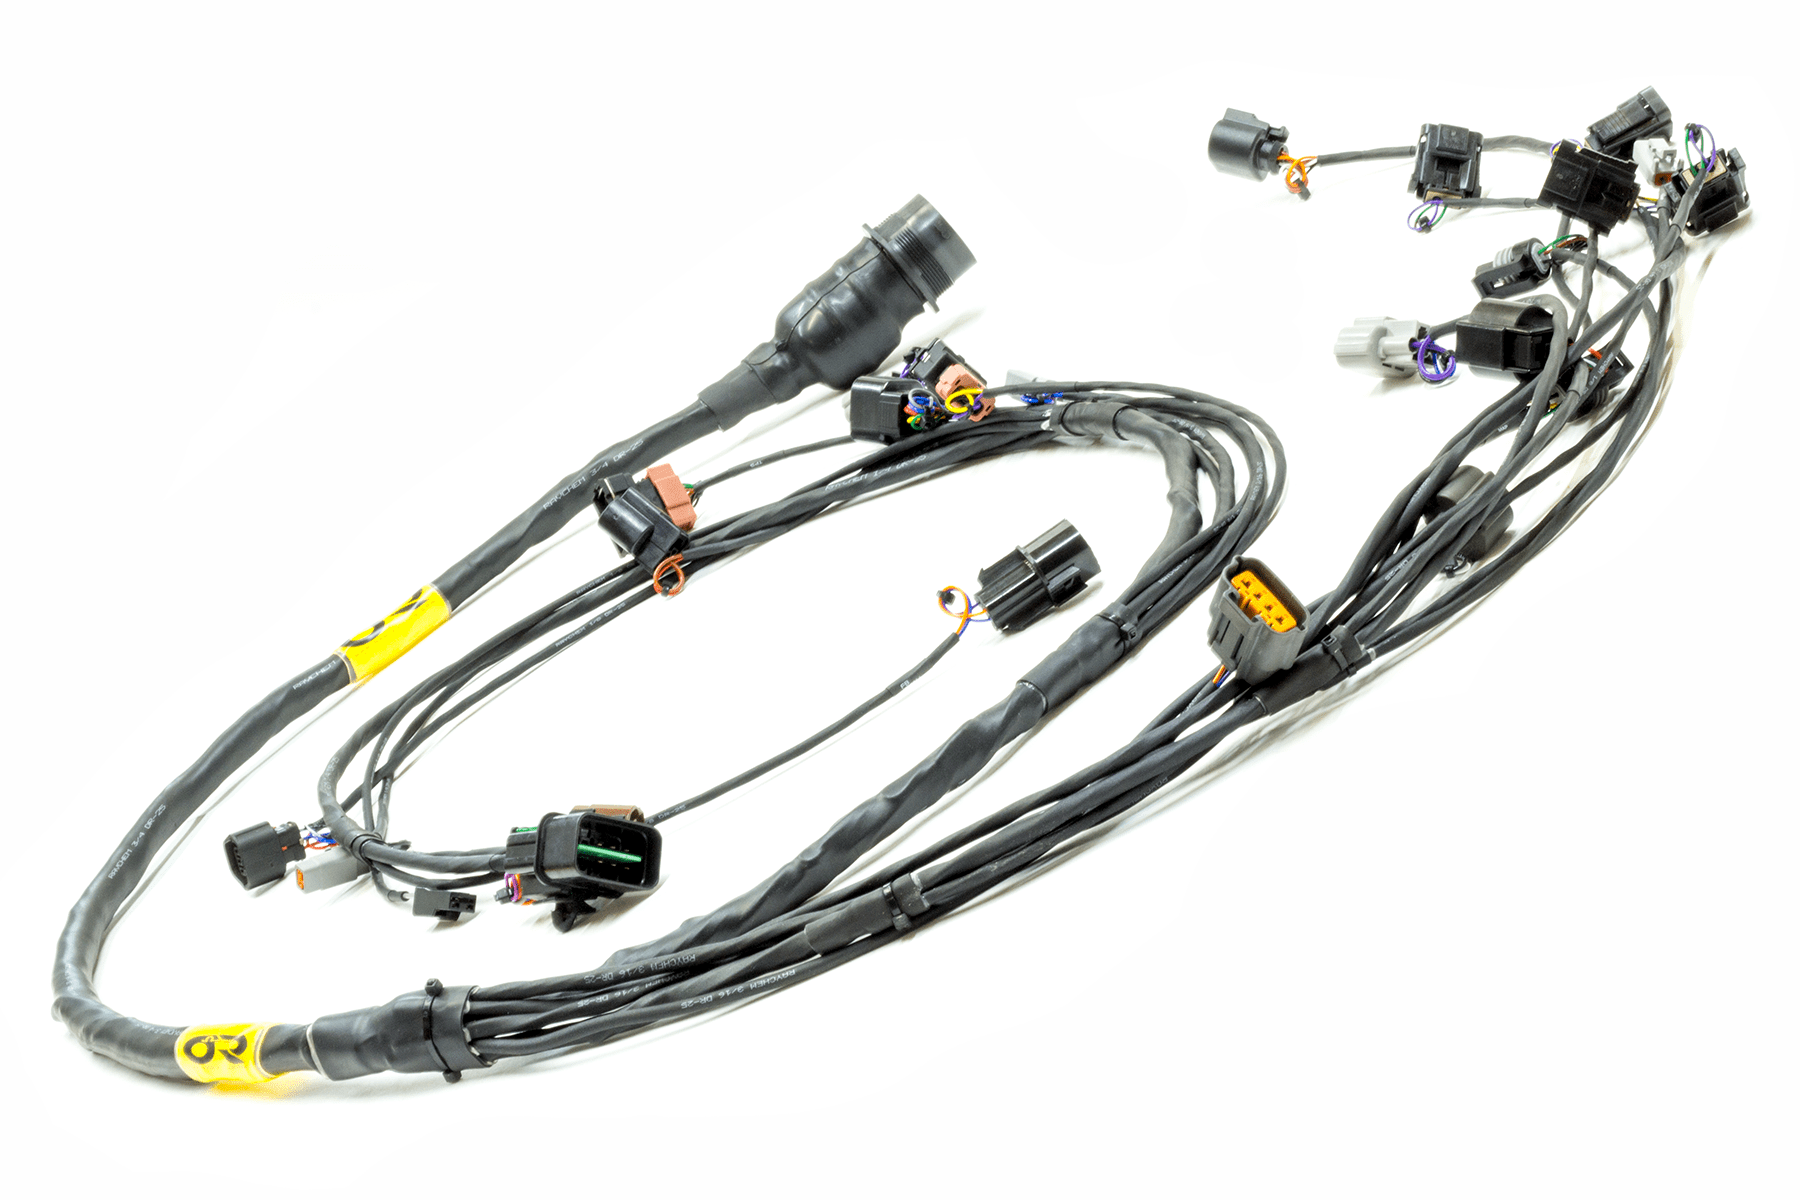 Evo 4 6 Plug Amp Play Tucked Mil Spec Engine Harness